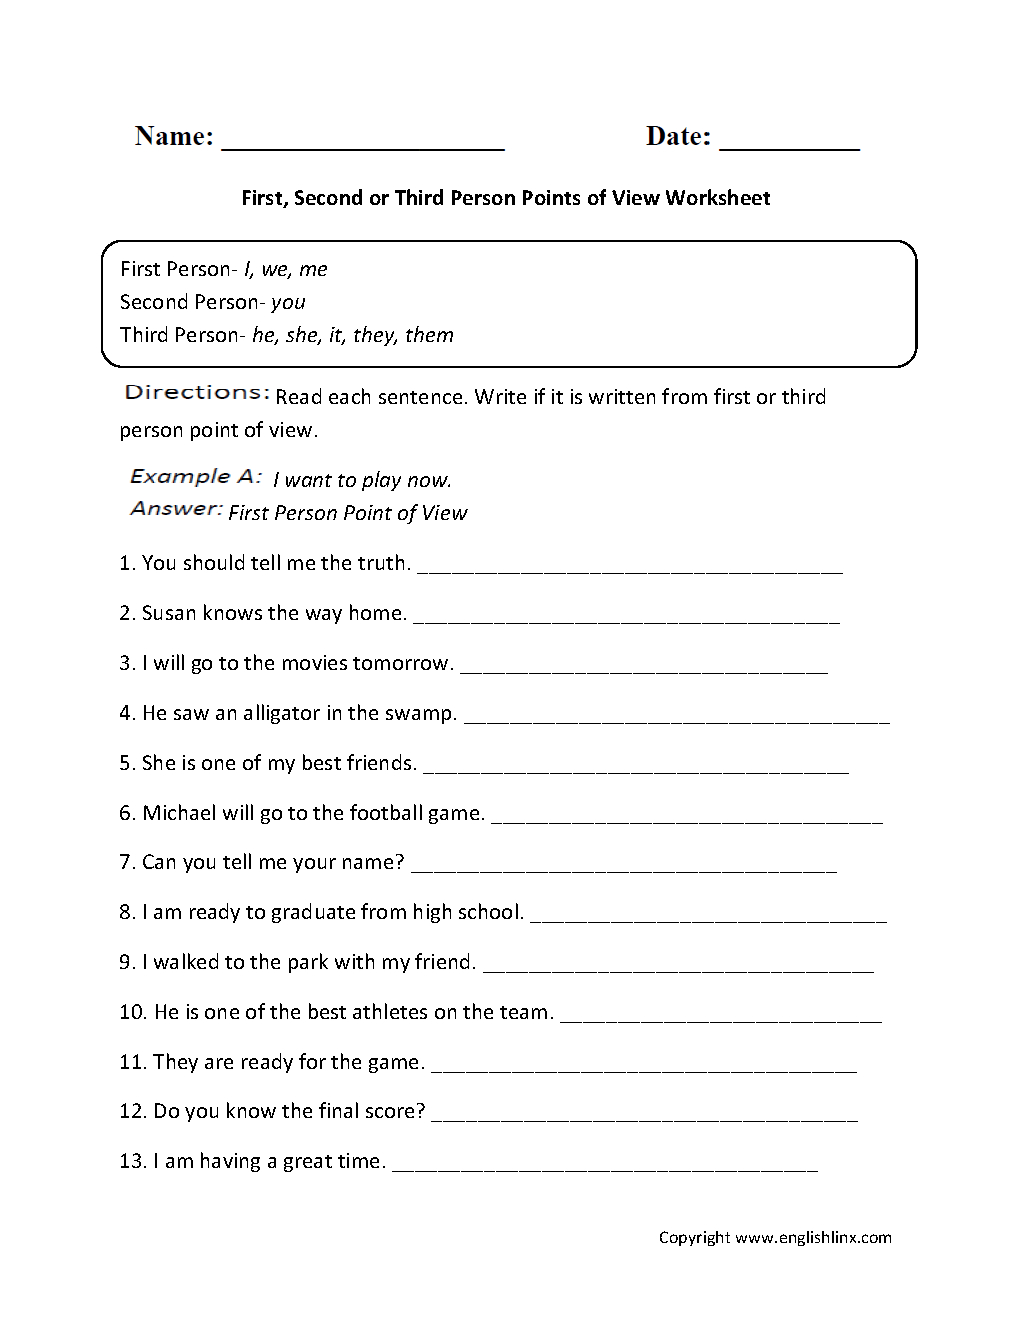 First, Second Or Third Person Points Of View Worksheet | Great | Printable Worksheets For 6Th Grade Language Arts